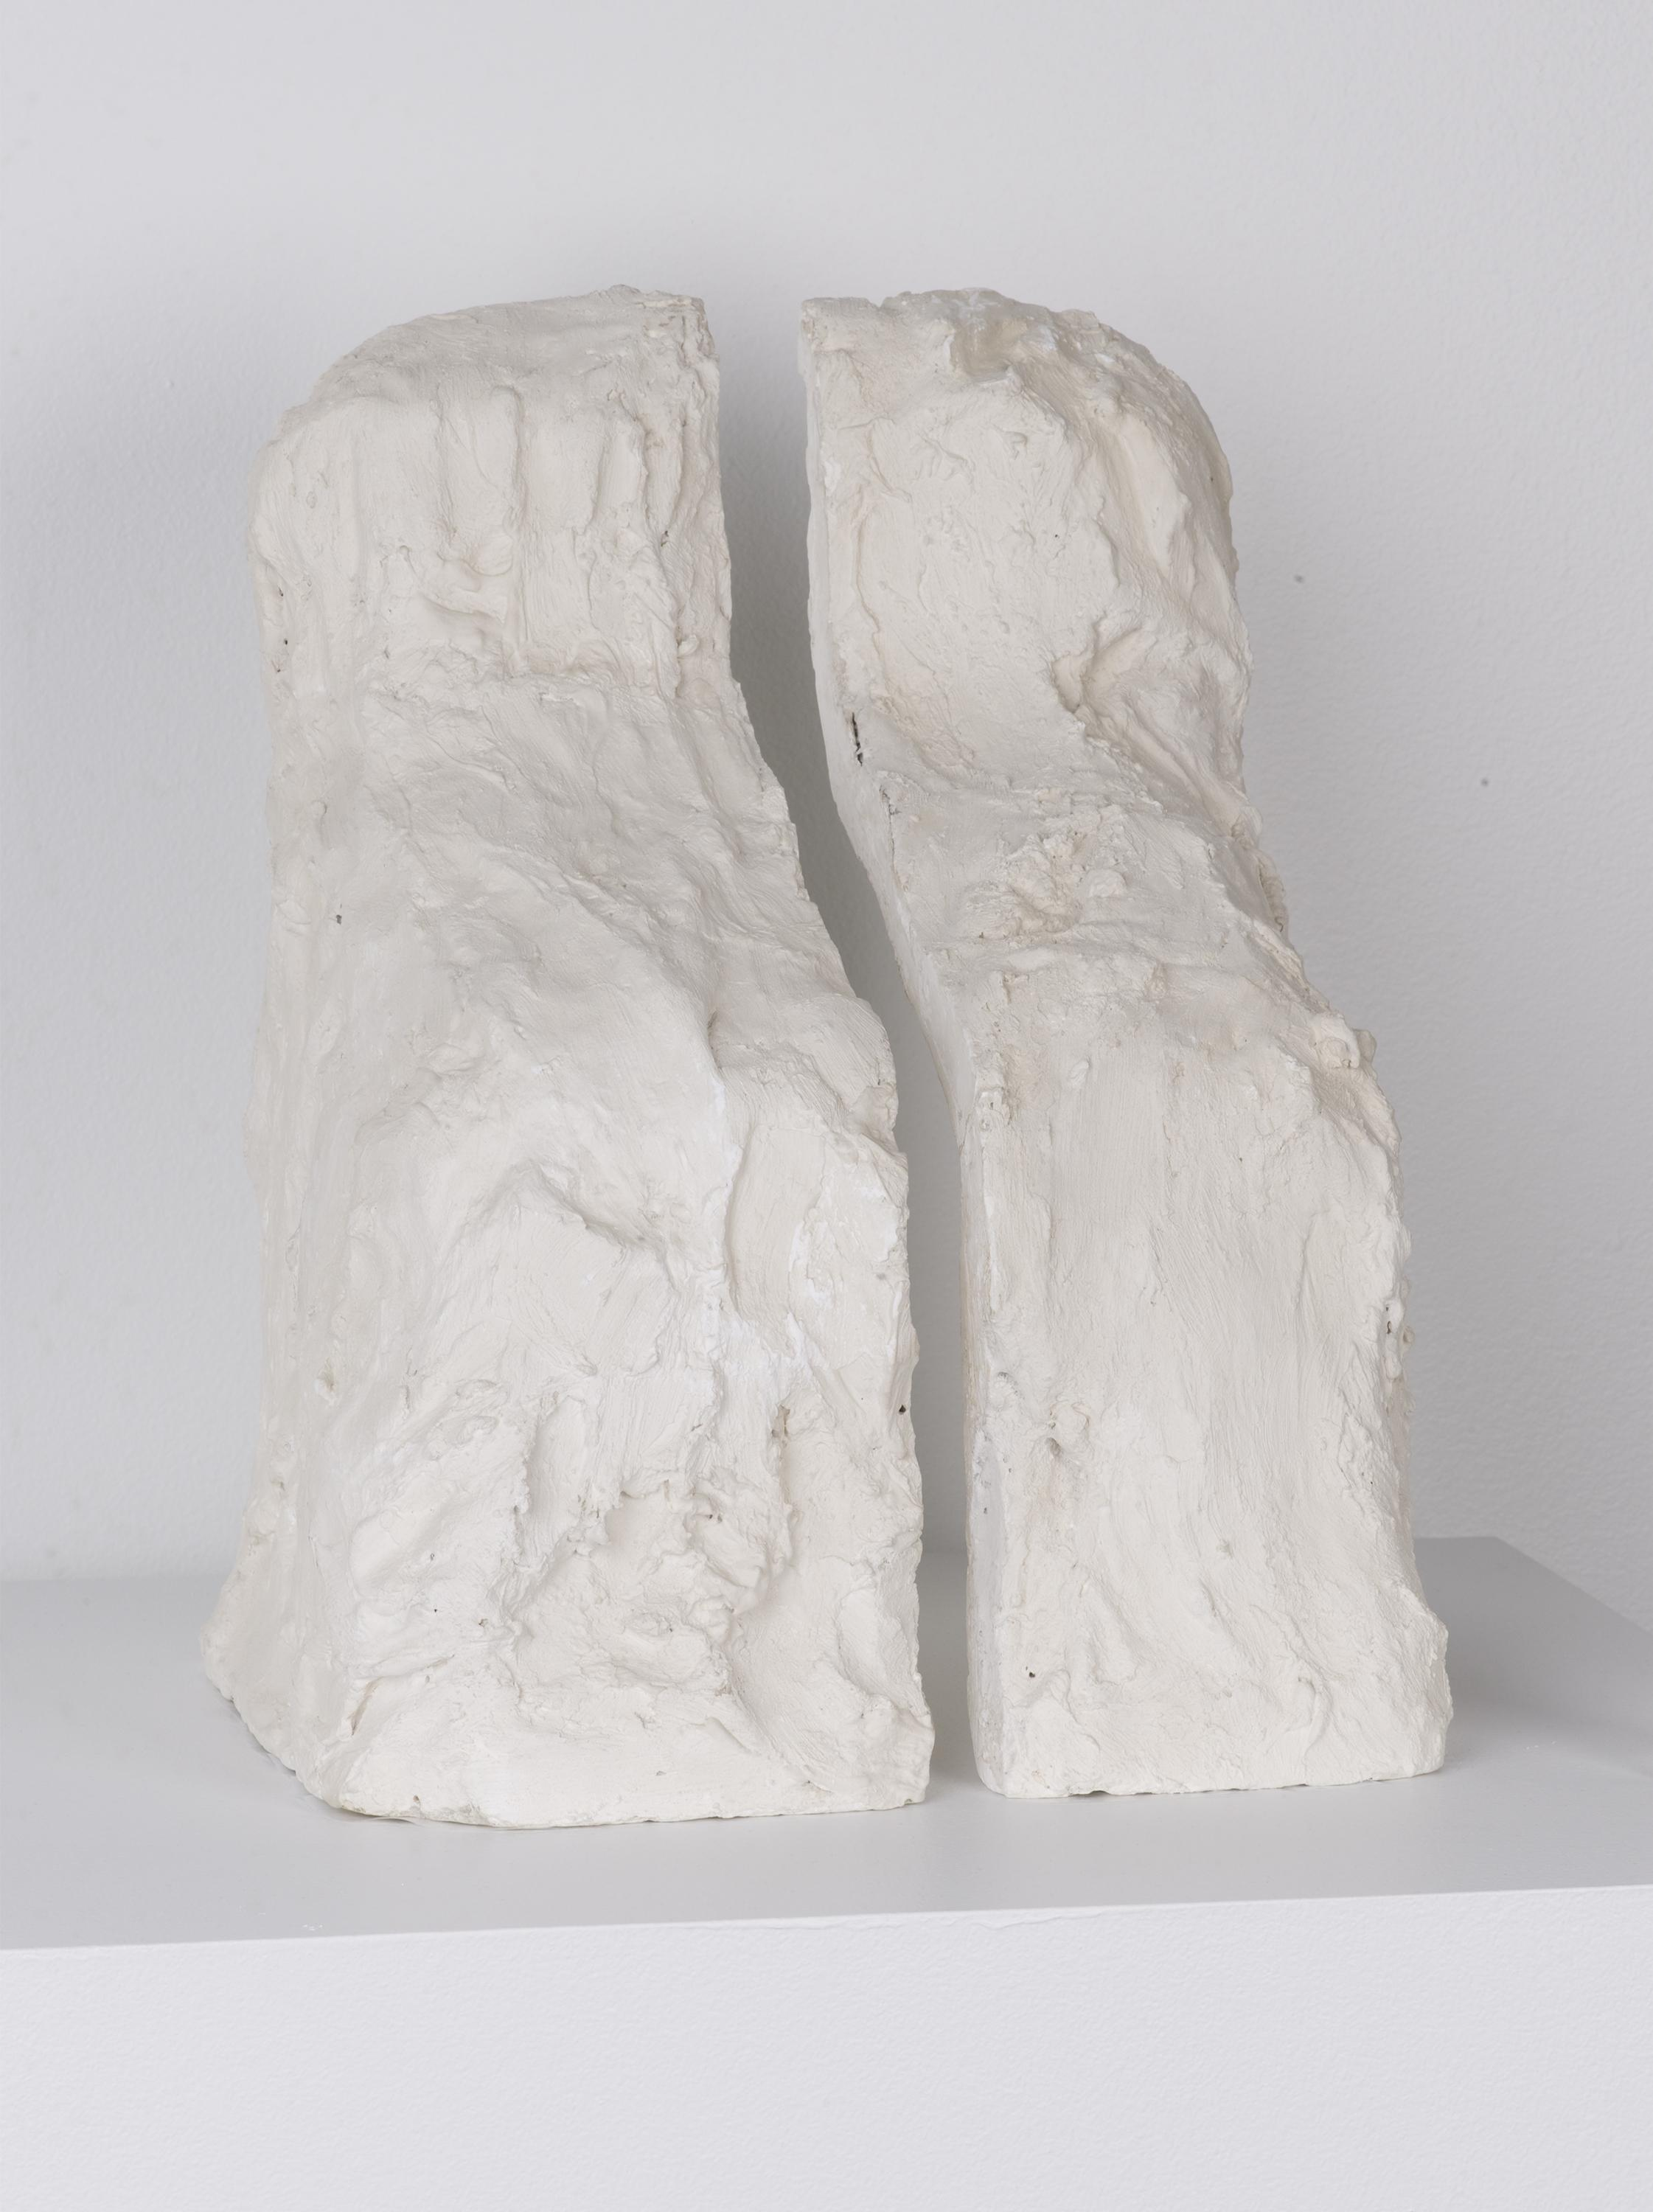 A messy white plaster form has been cleaved into two halves, like bookends.